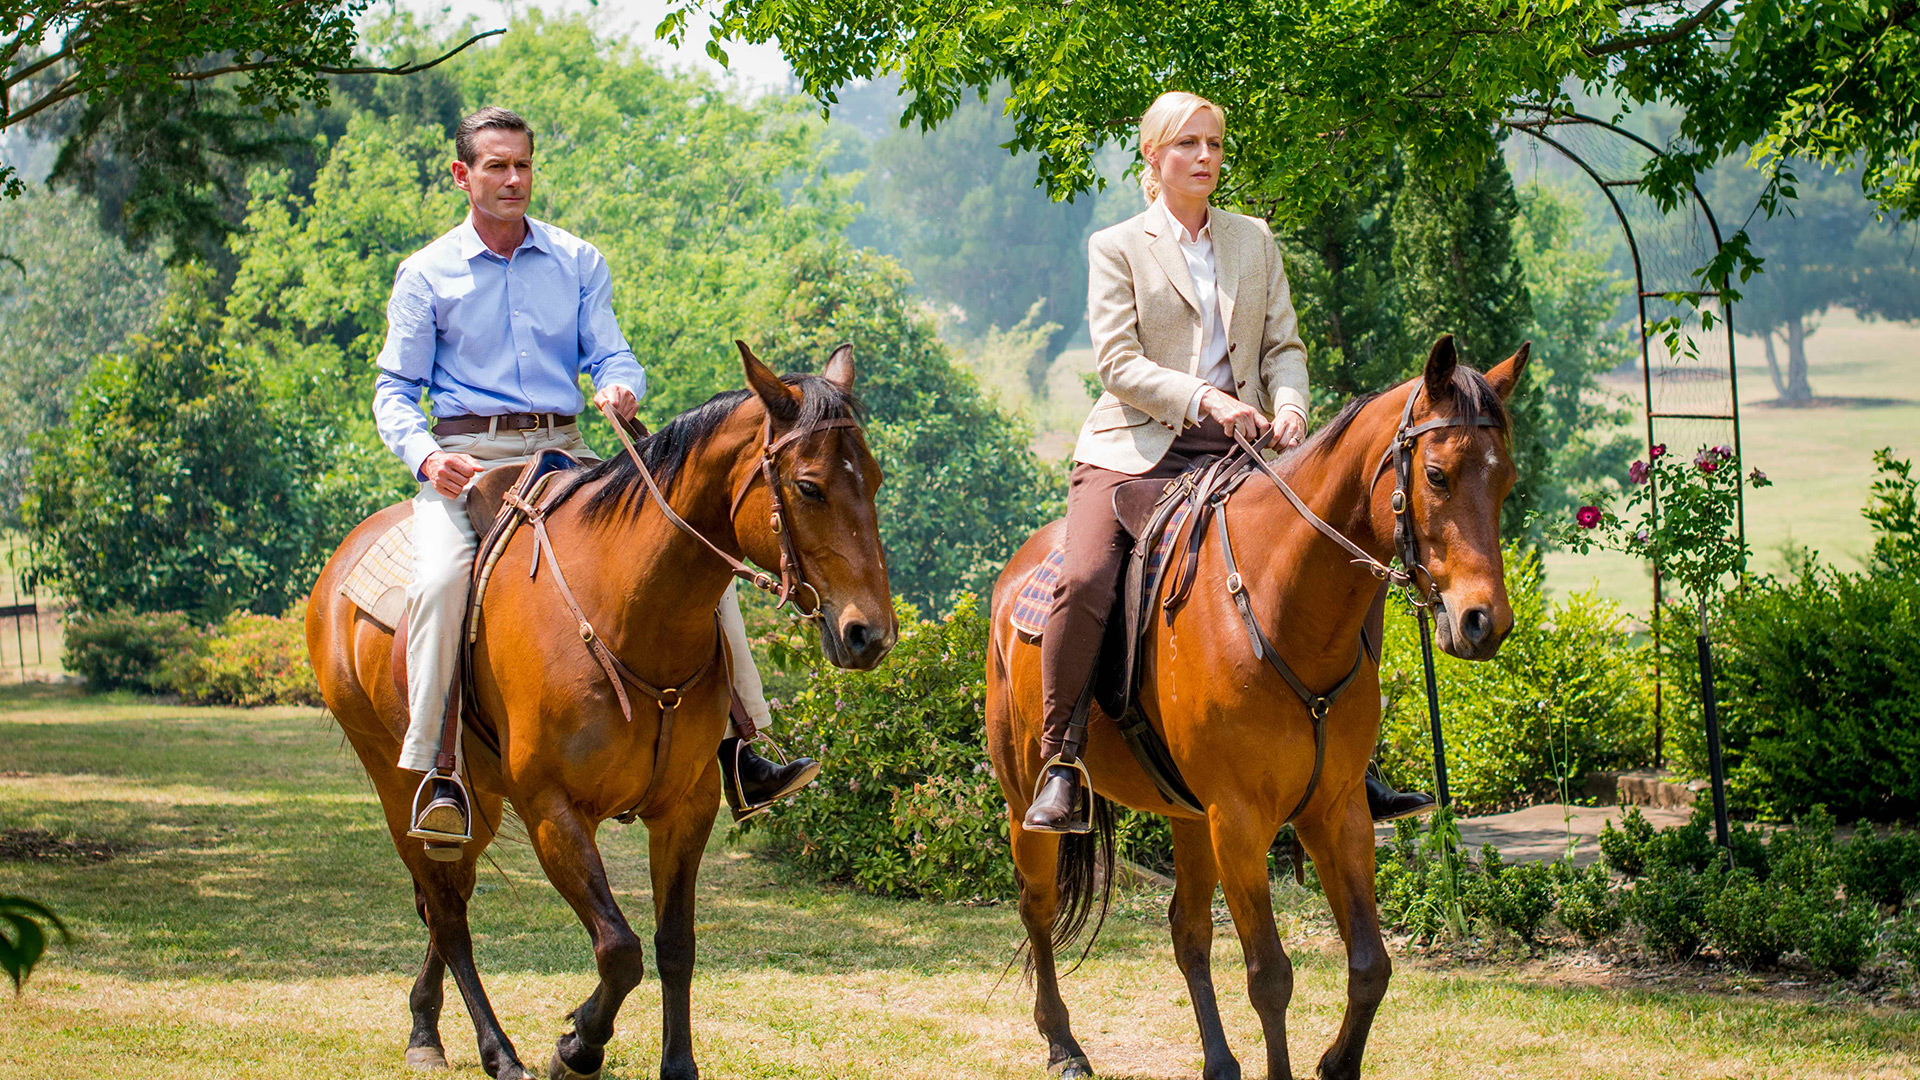 George Bligh (Brett Climo) and Sara Adams (Marta Dusseldorp) share a horse ride.